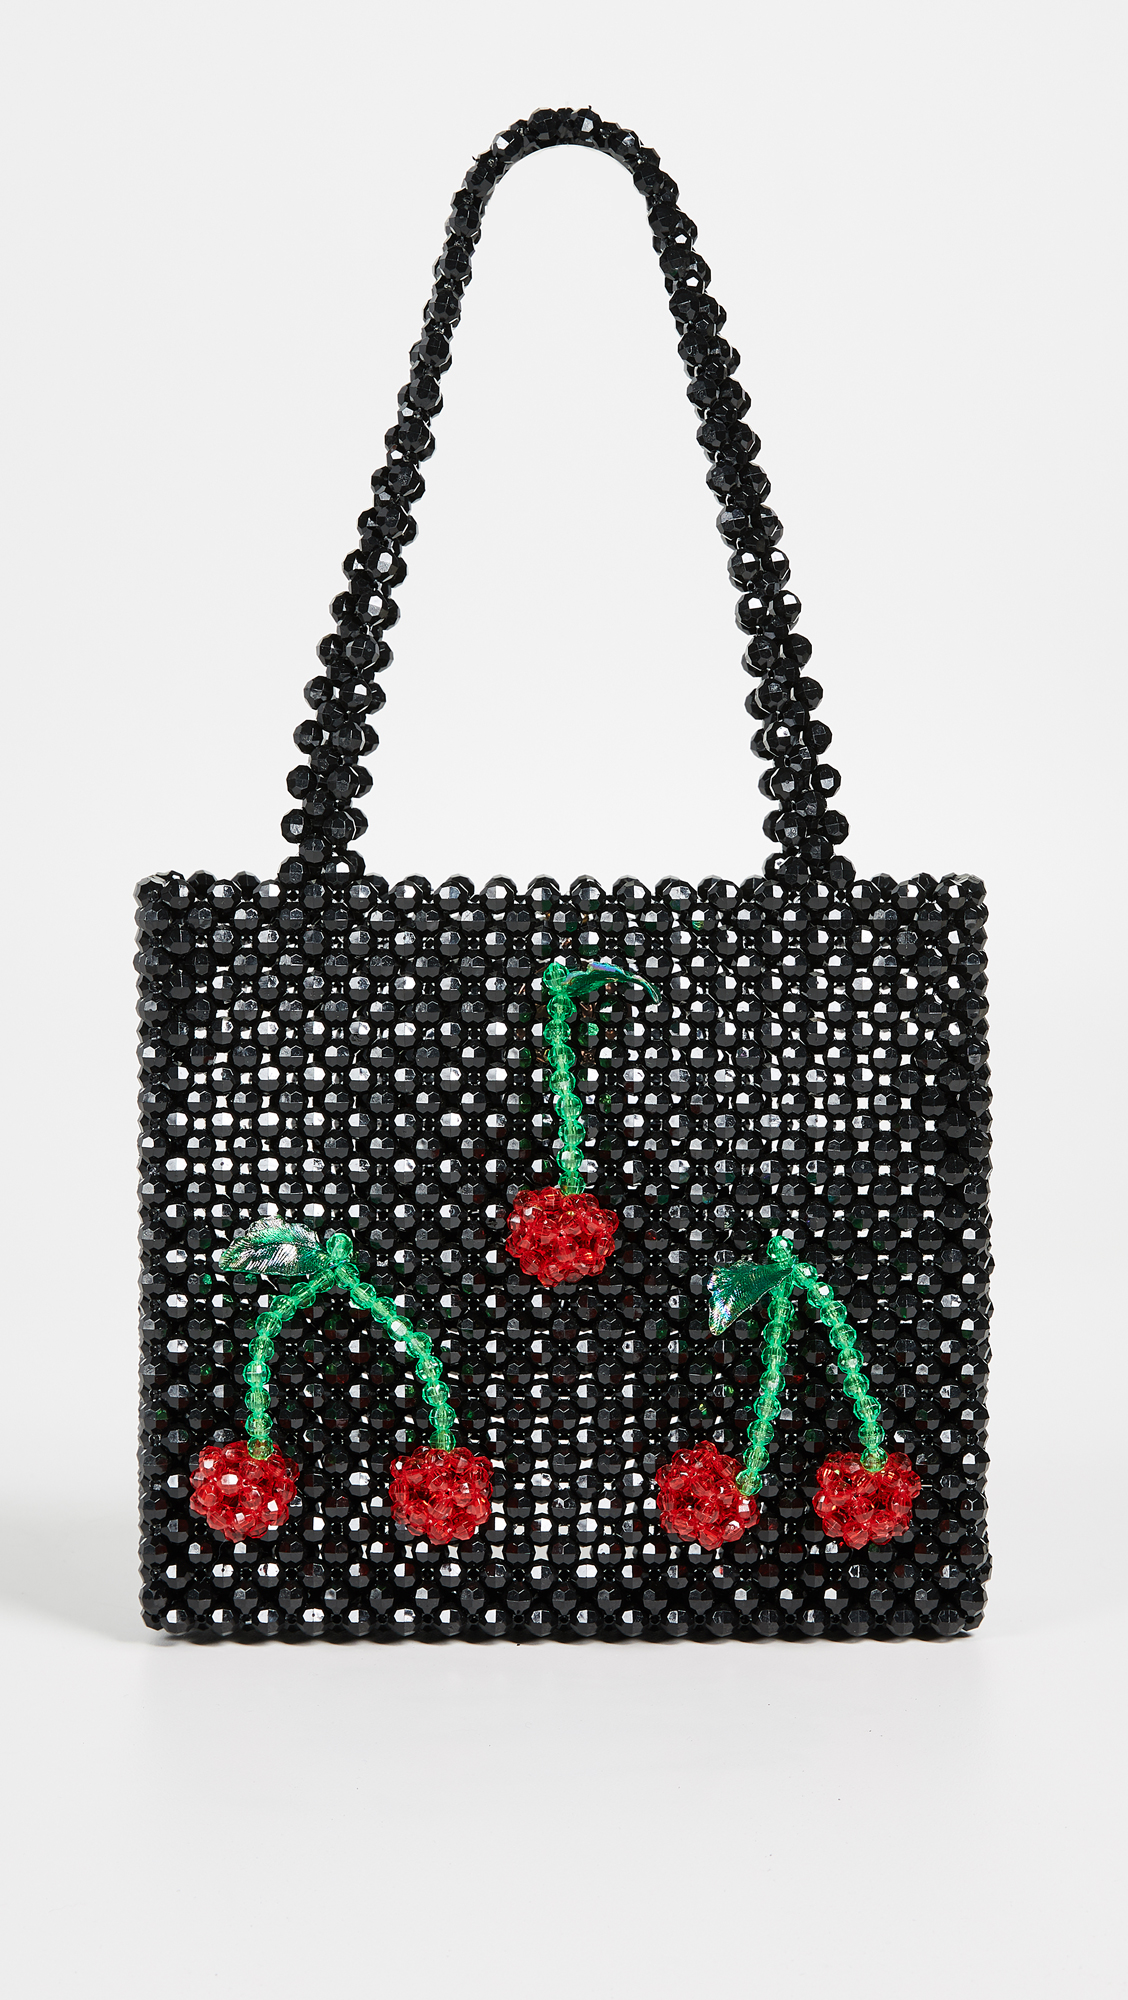 Super Cute Woven Beaded Bags by Susan Alexandra - Ma Cherie Bag in Black